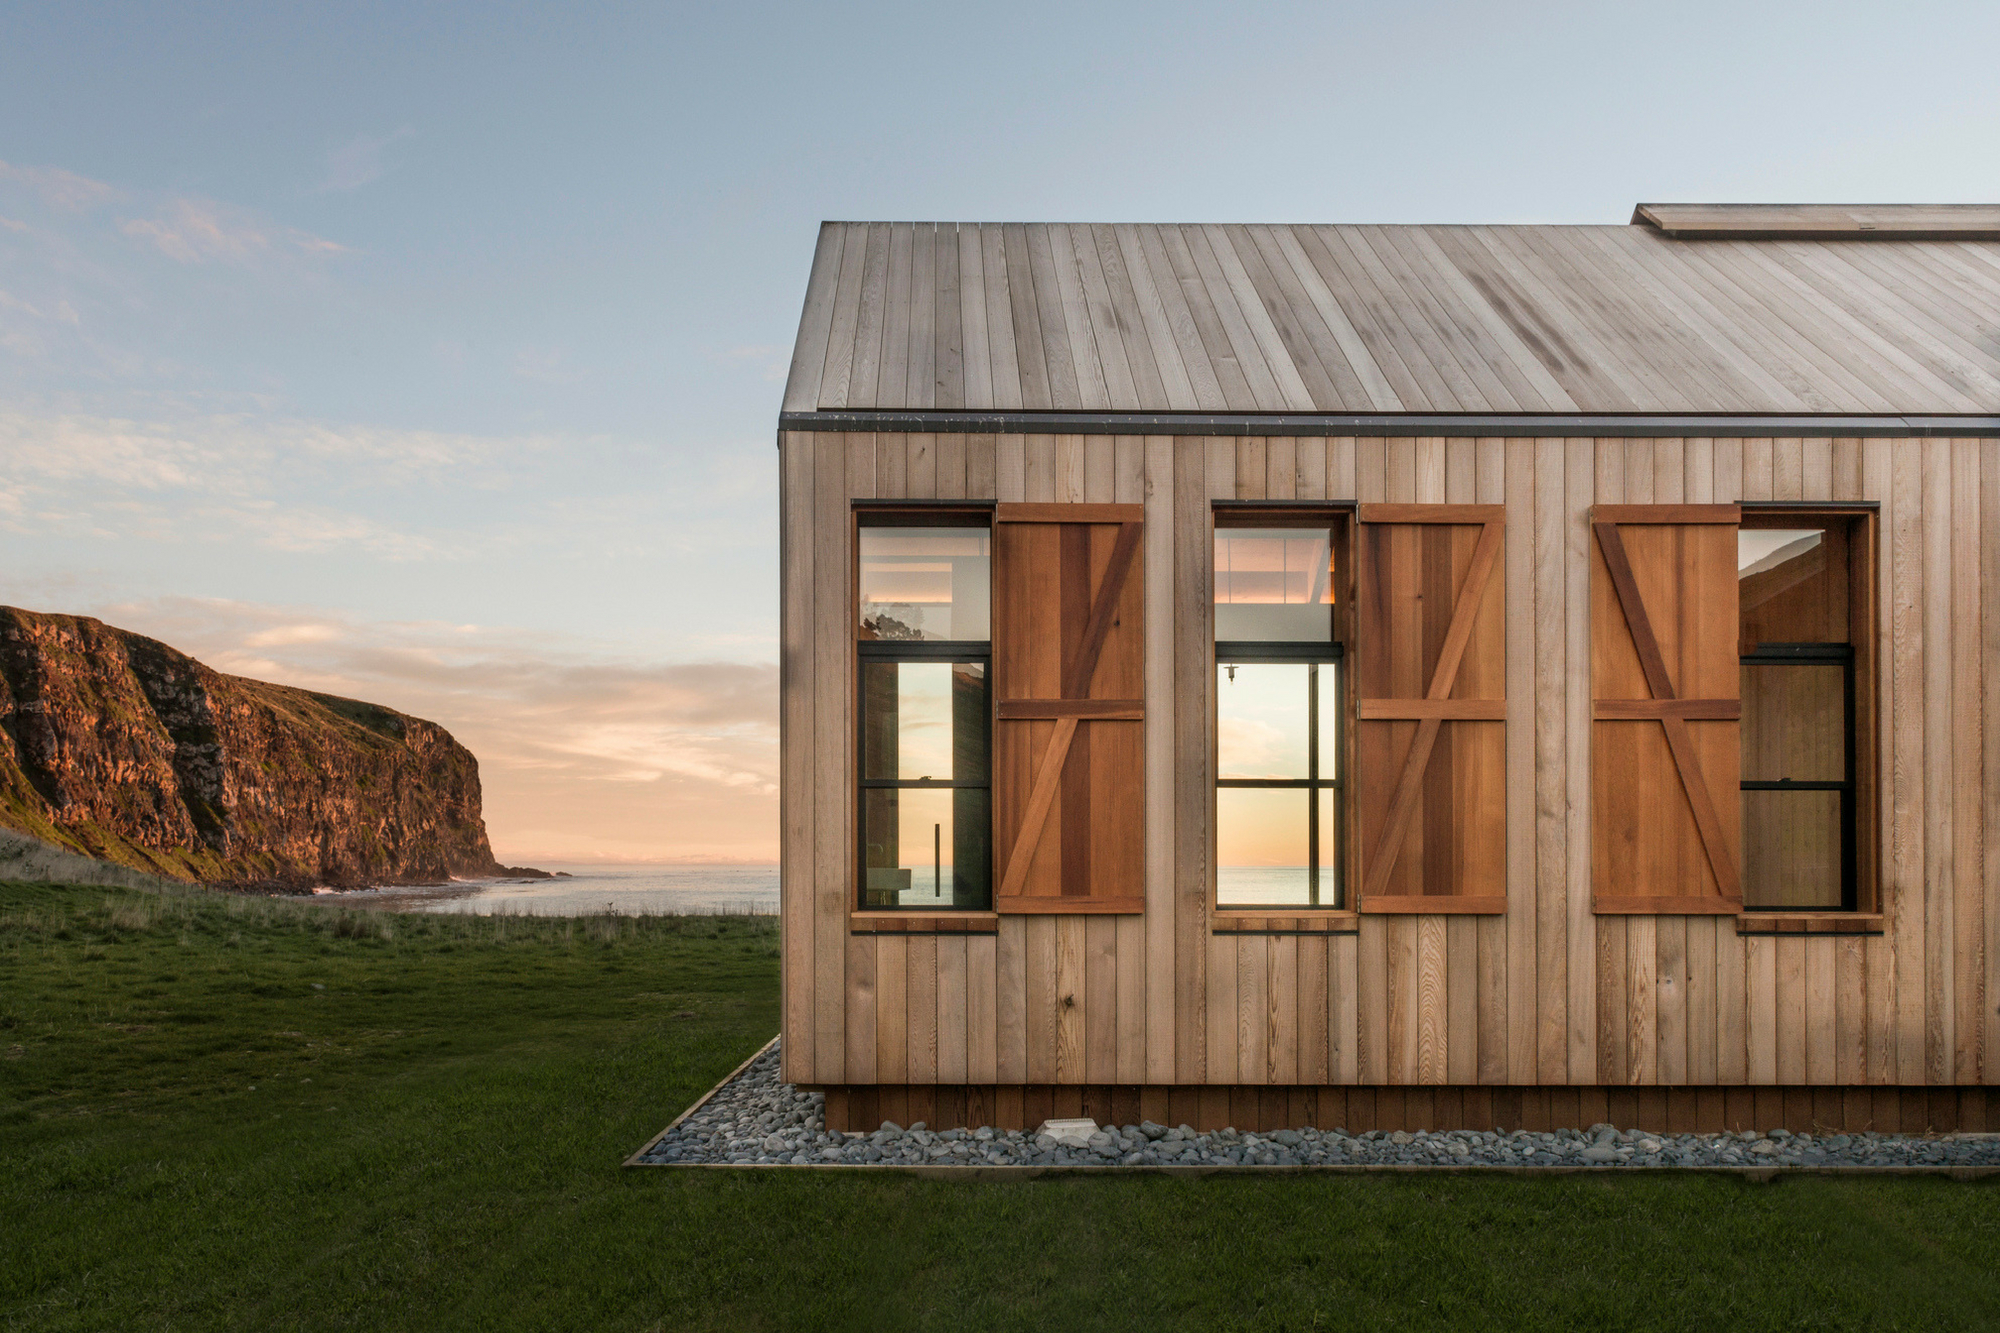 Timber Clad Roofs Simplicity Defined Abodo Wood